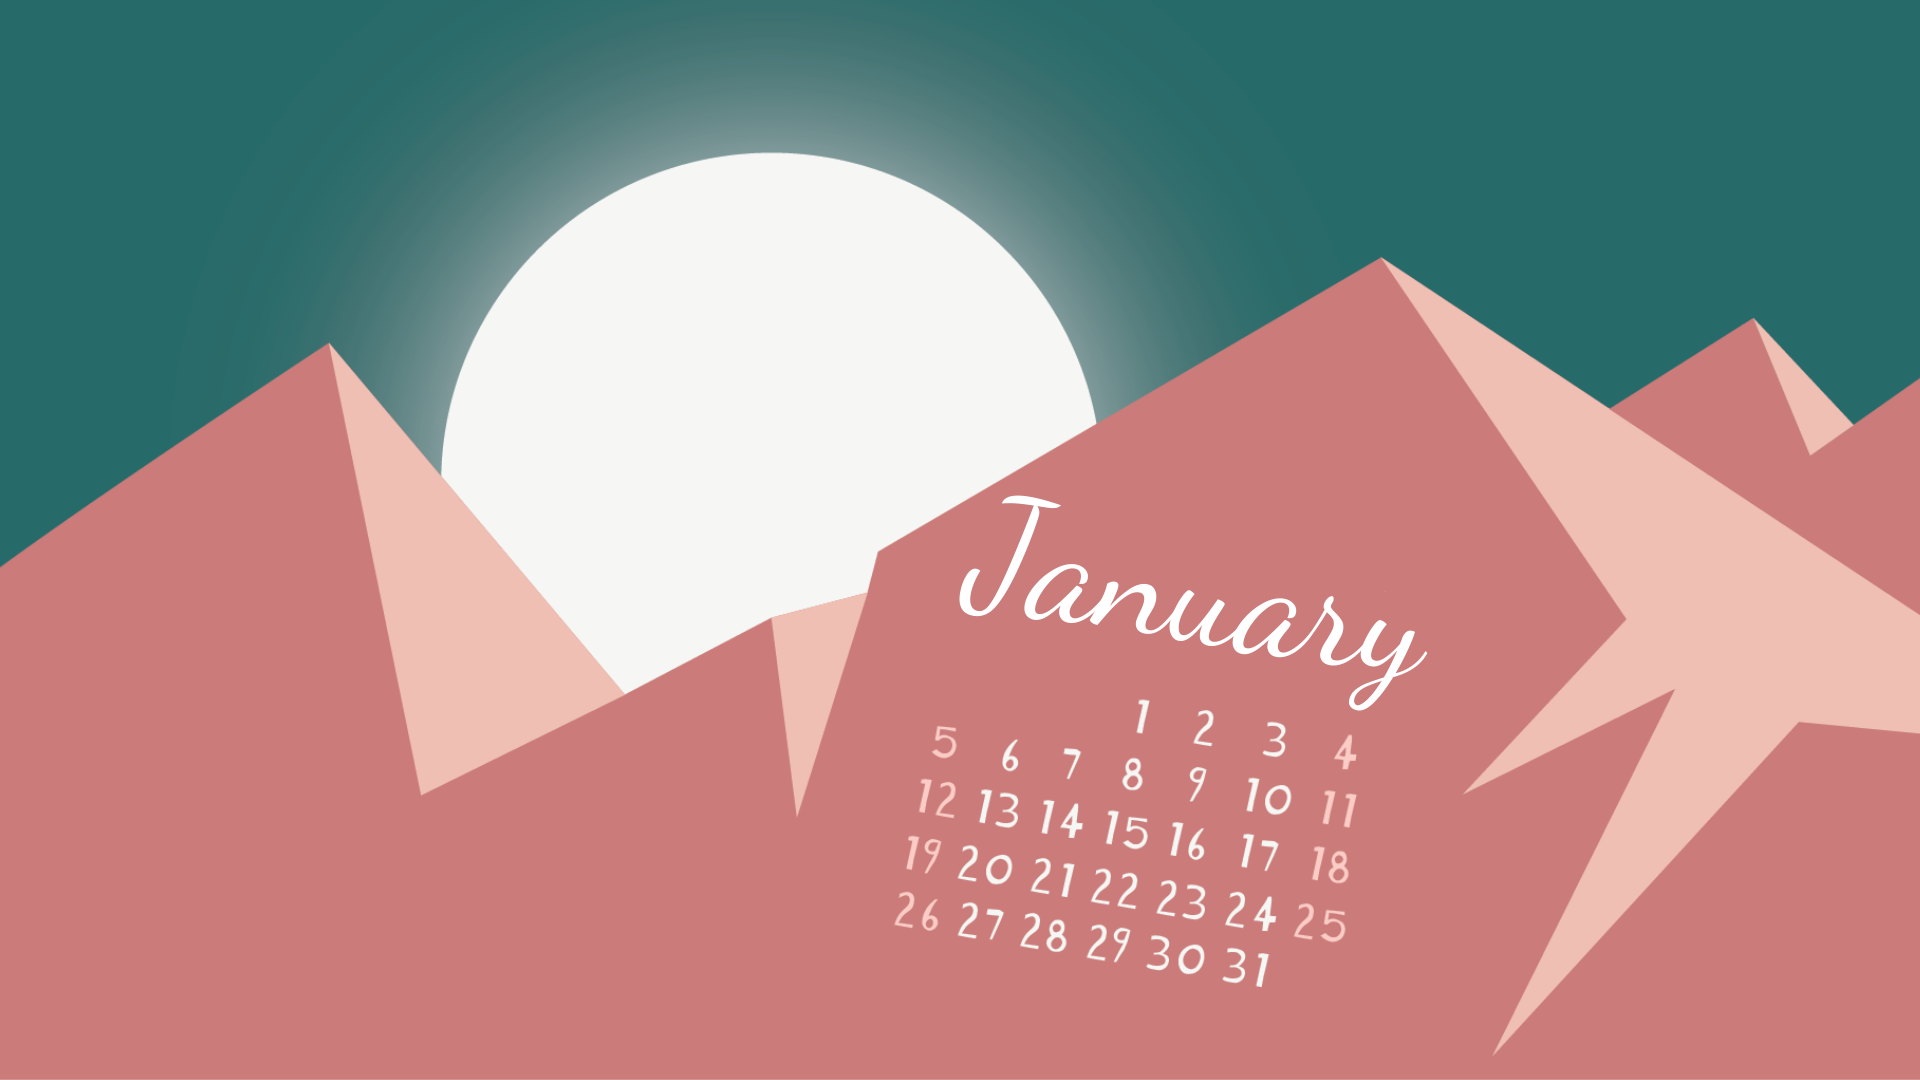 Download Your free January 2020 Wallpaper